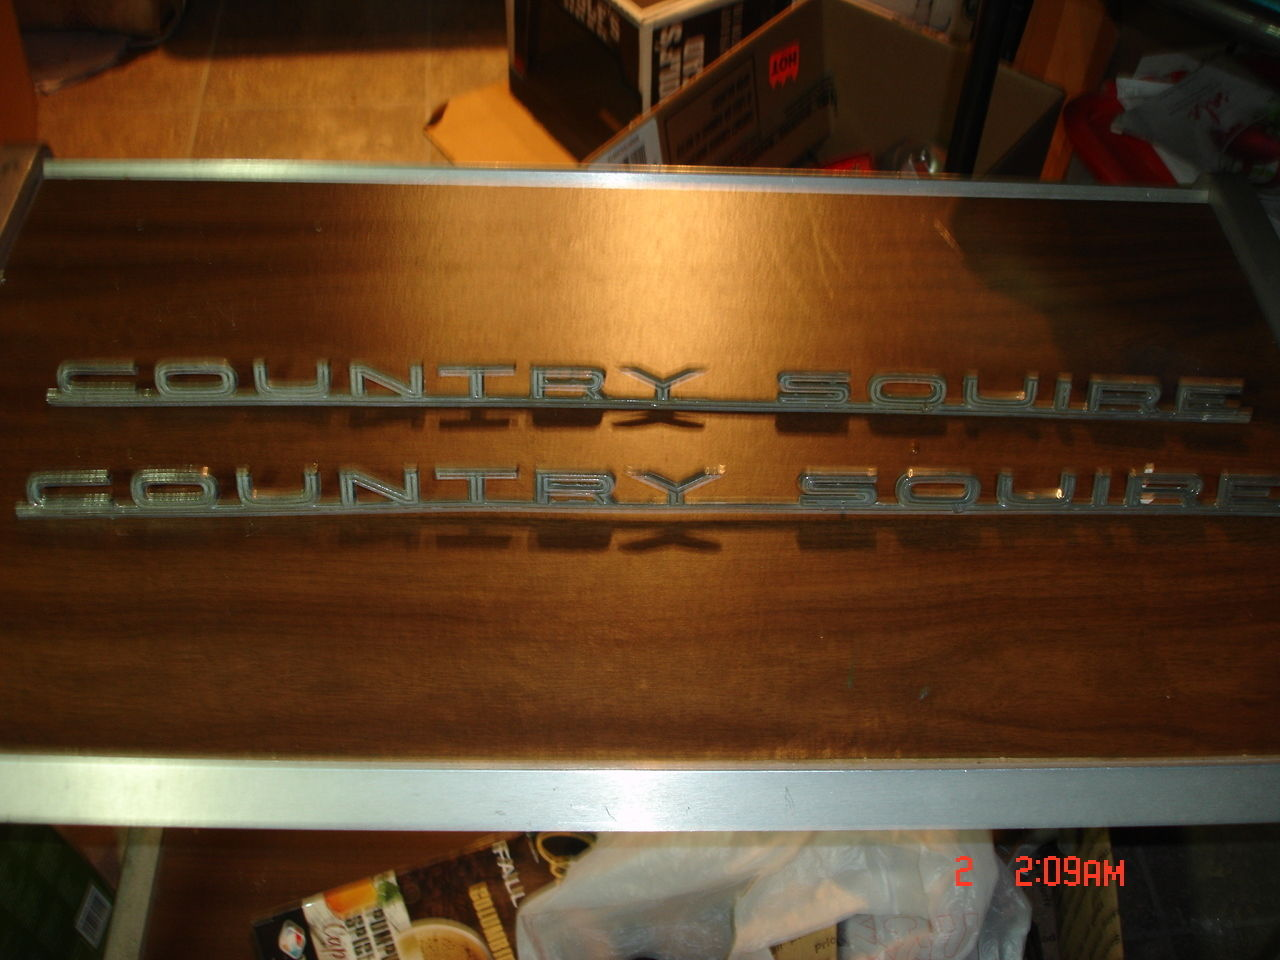 2 Original 1965 Galaxie Country Squire Station Wagon Fender Ornament / Emblems C5AB 16098 D